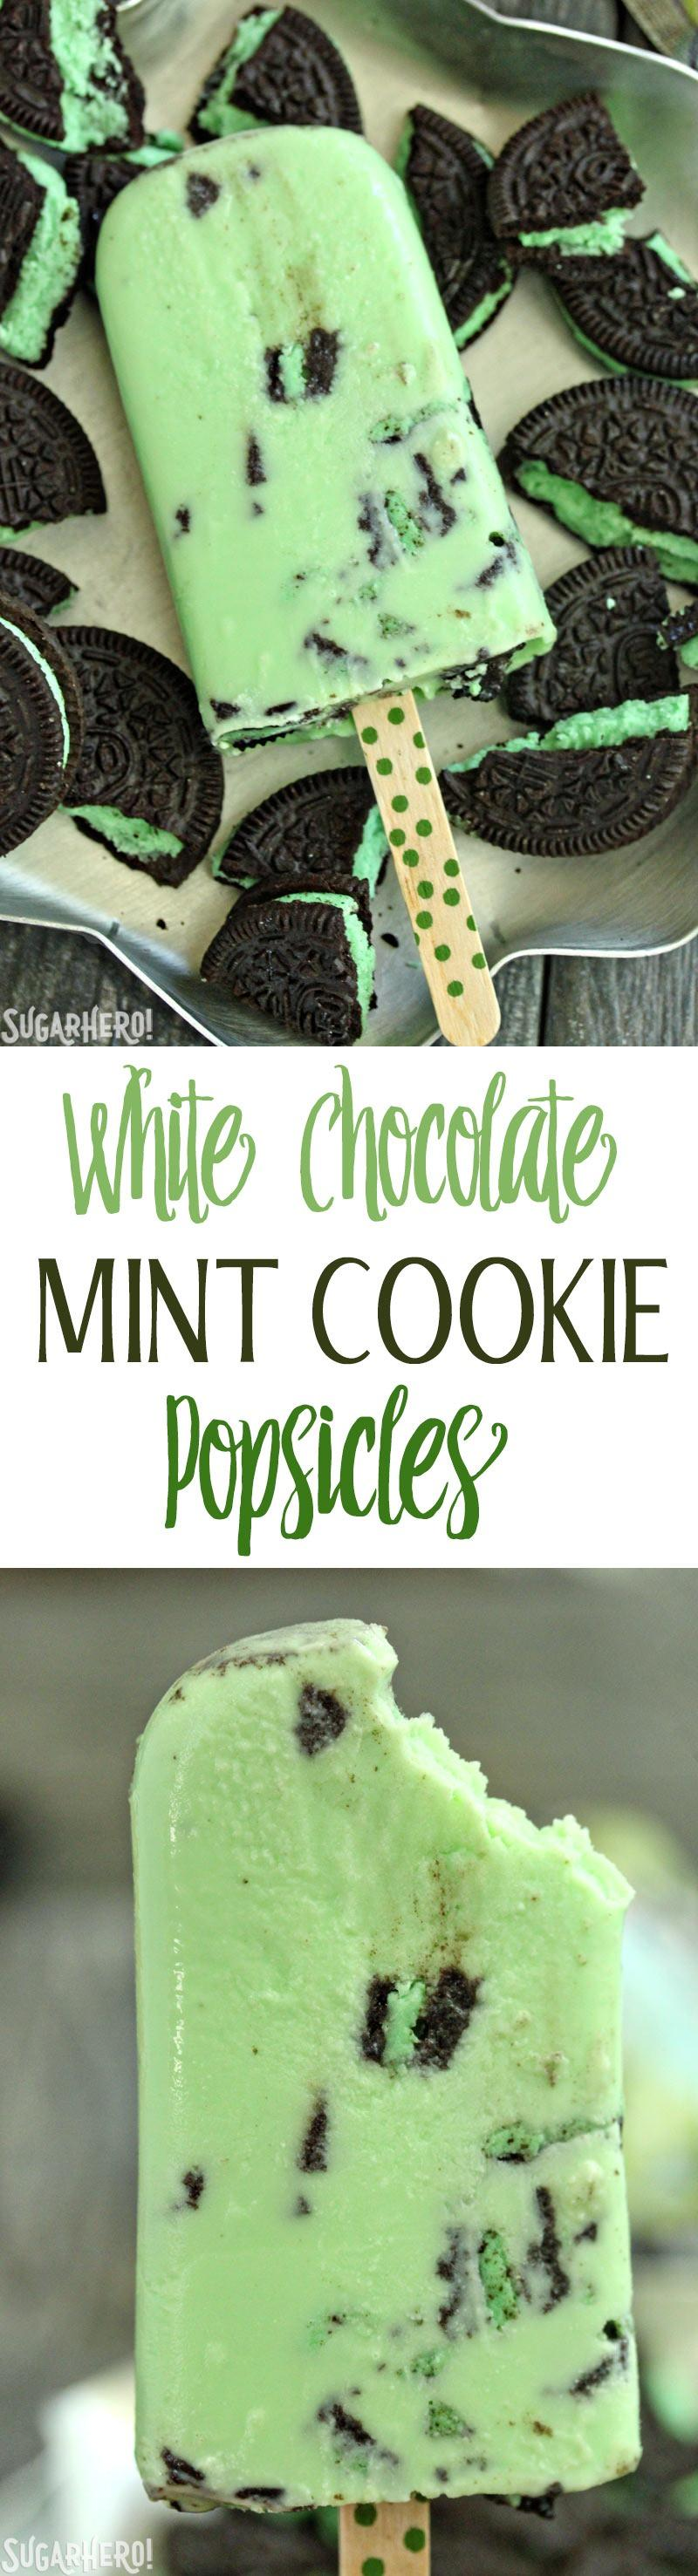 White Chocolate Mint Cookie Popsicles | From SugarHero.com